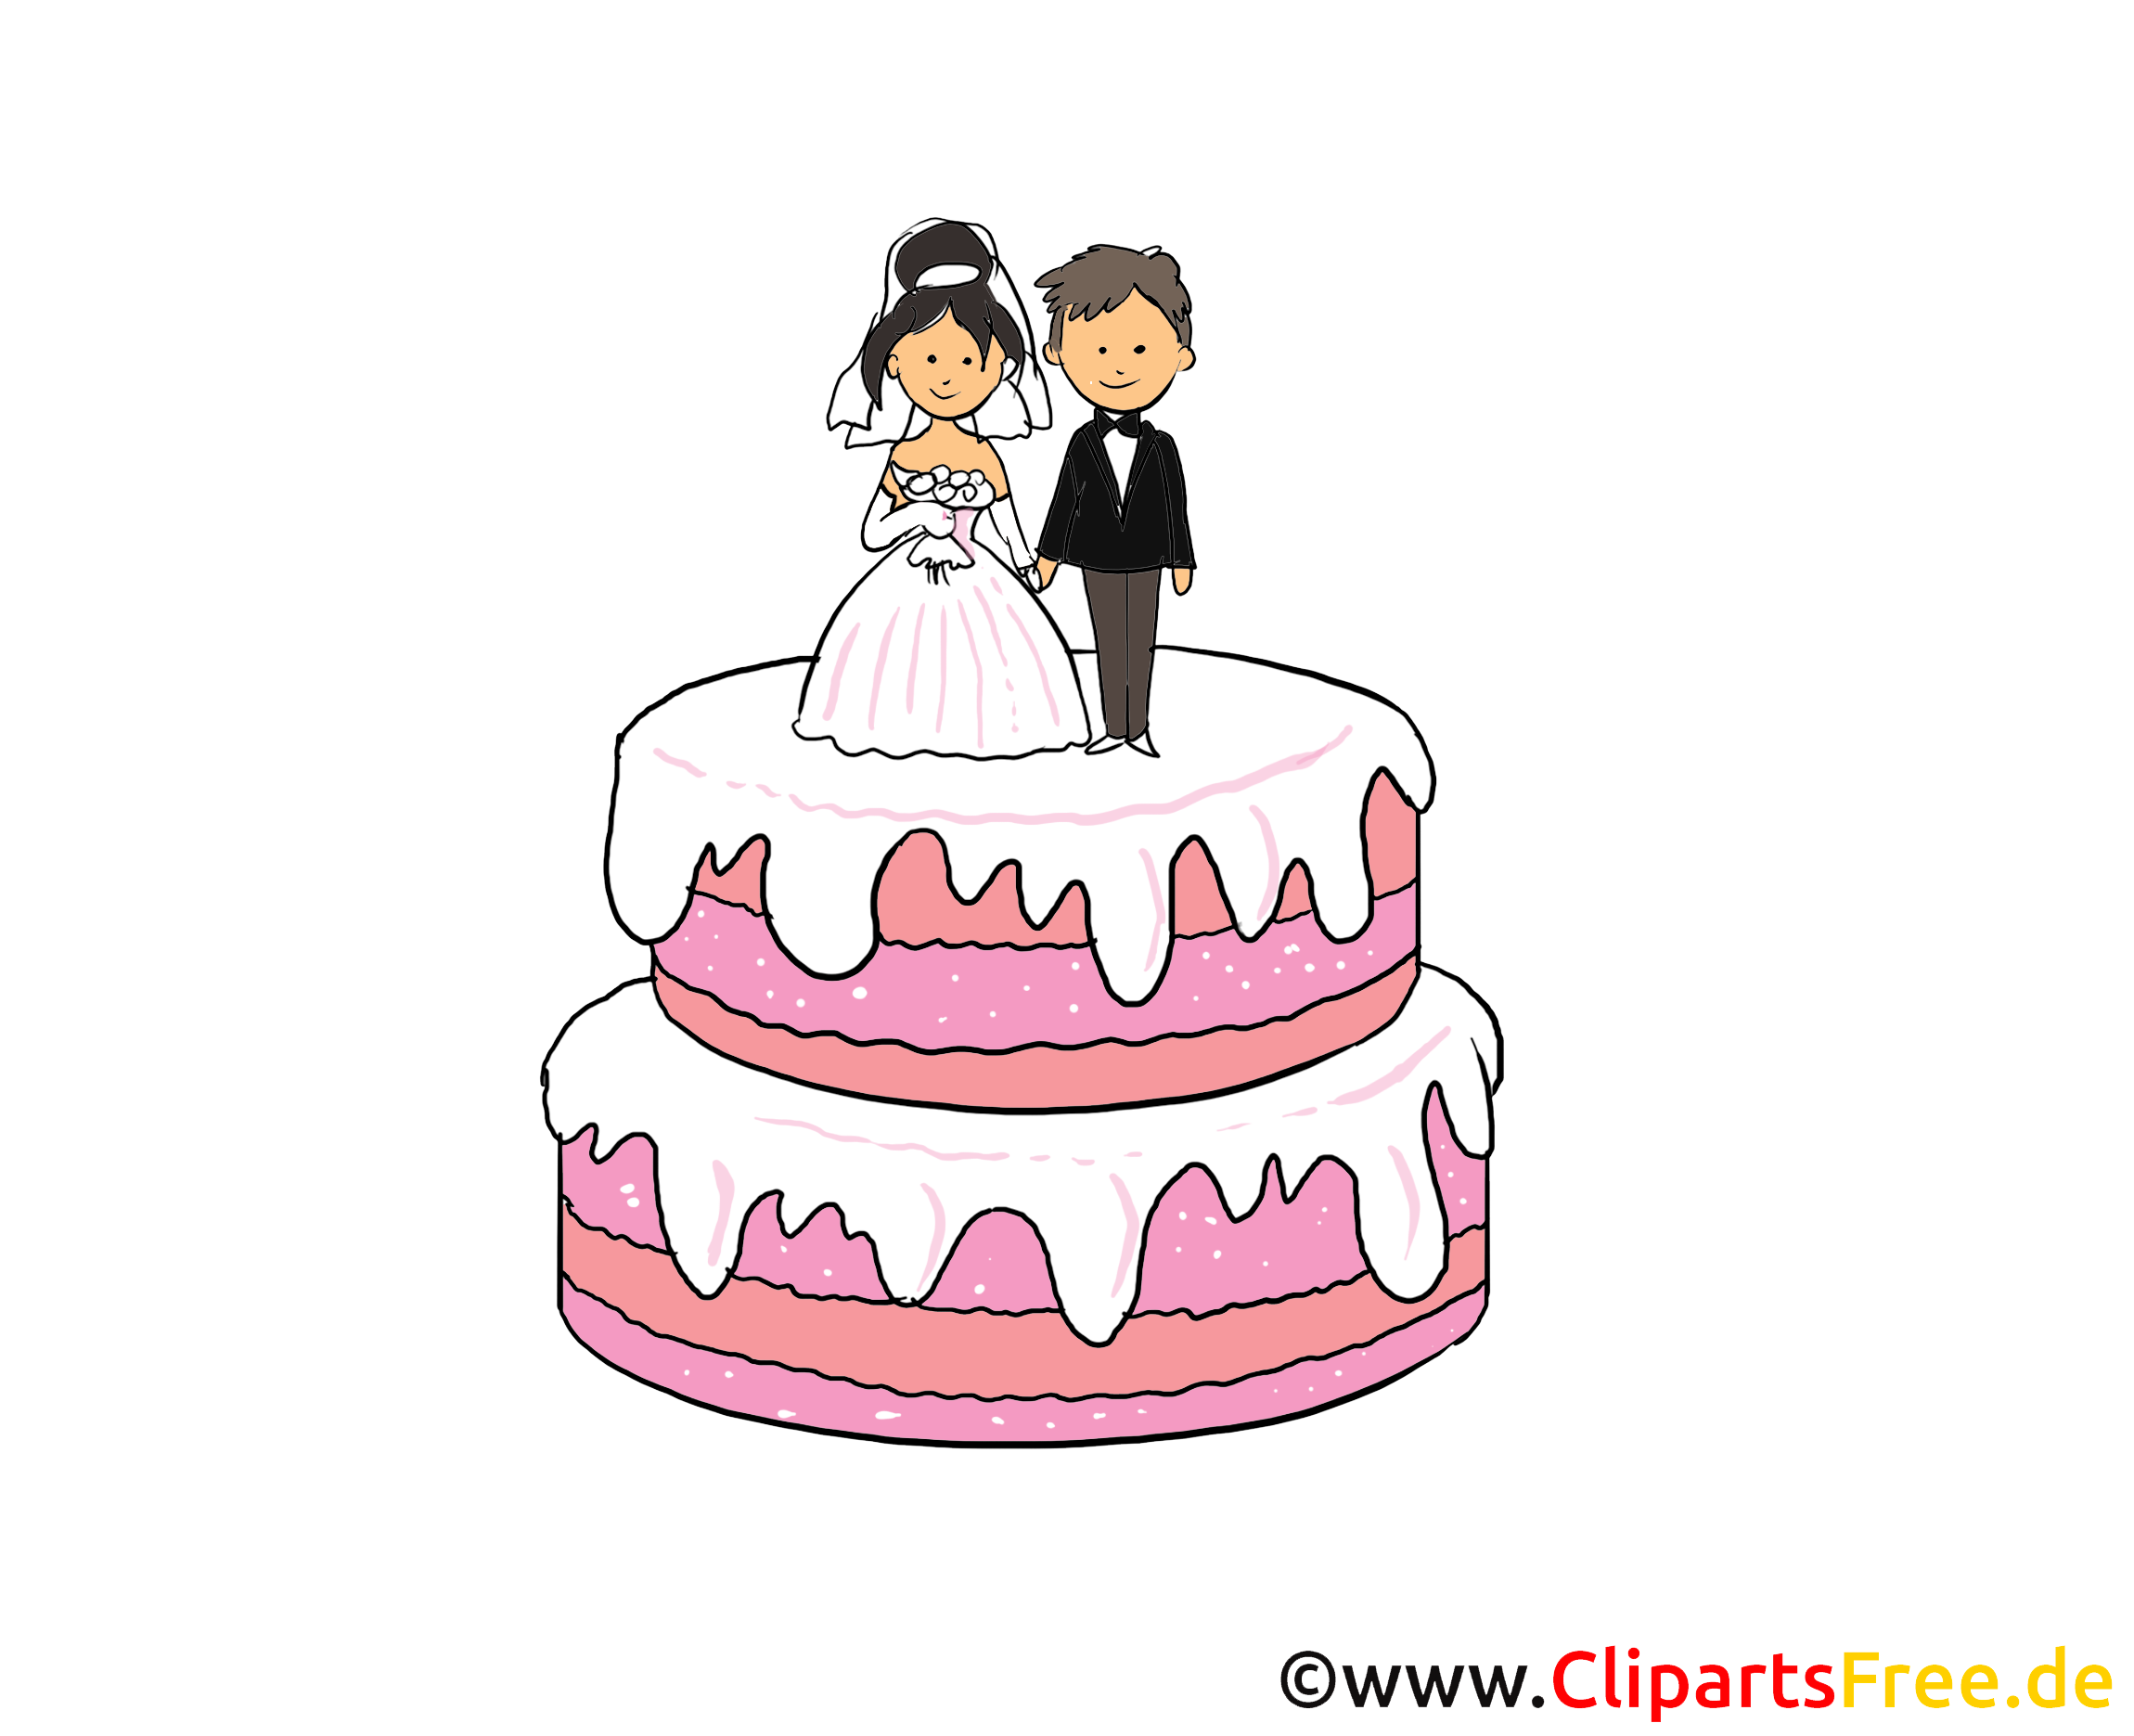 image tlcharger gteau mariage clipart - Dessin Mariage